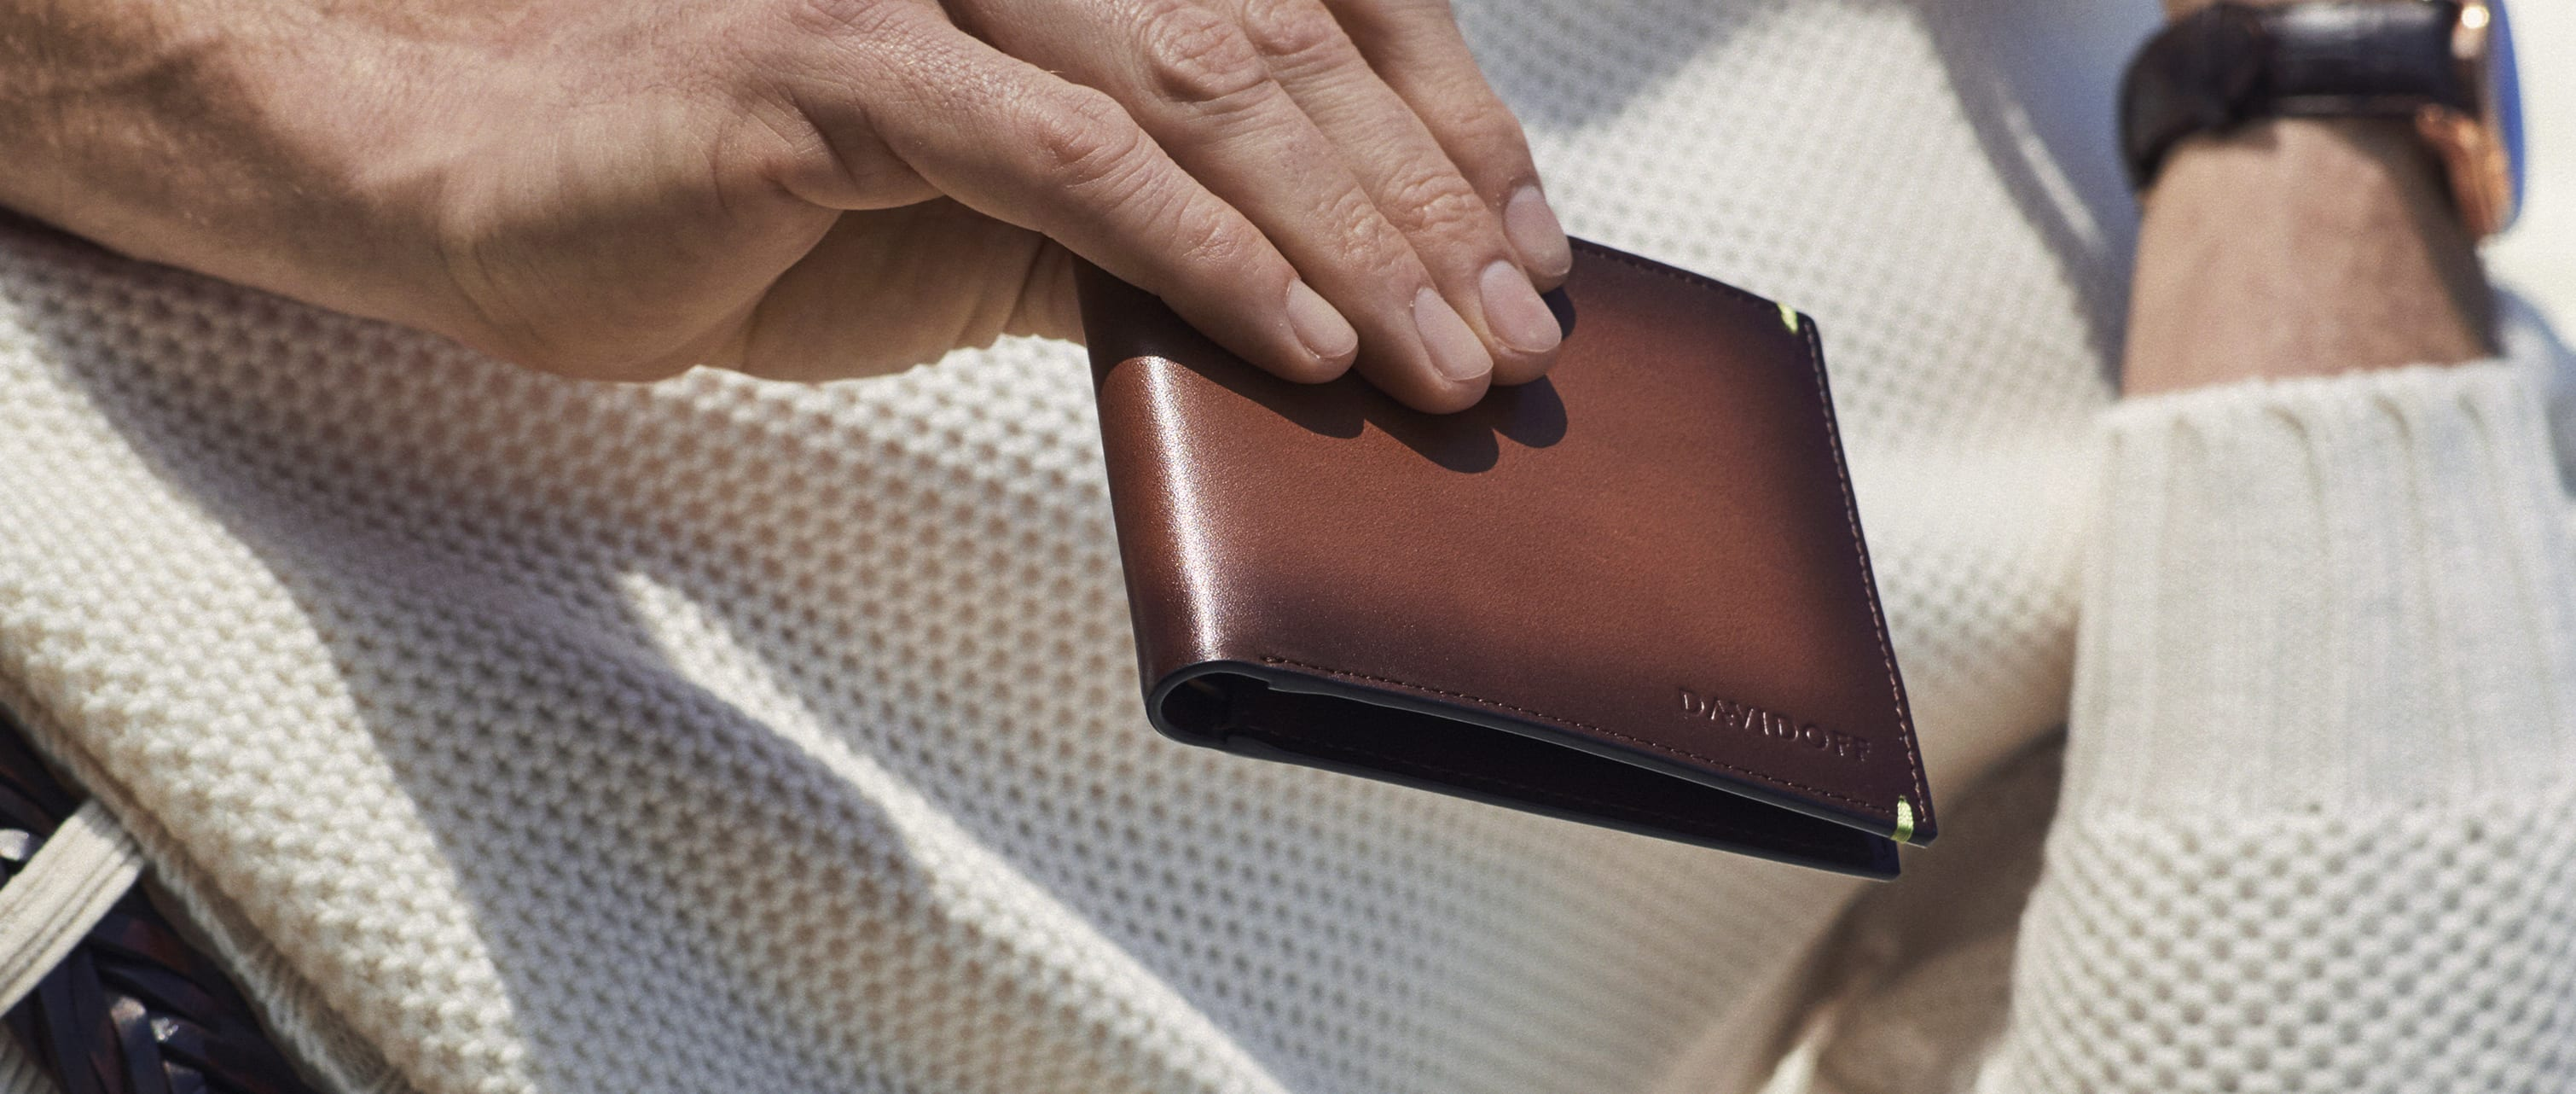 DAVIDOFF Wallets